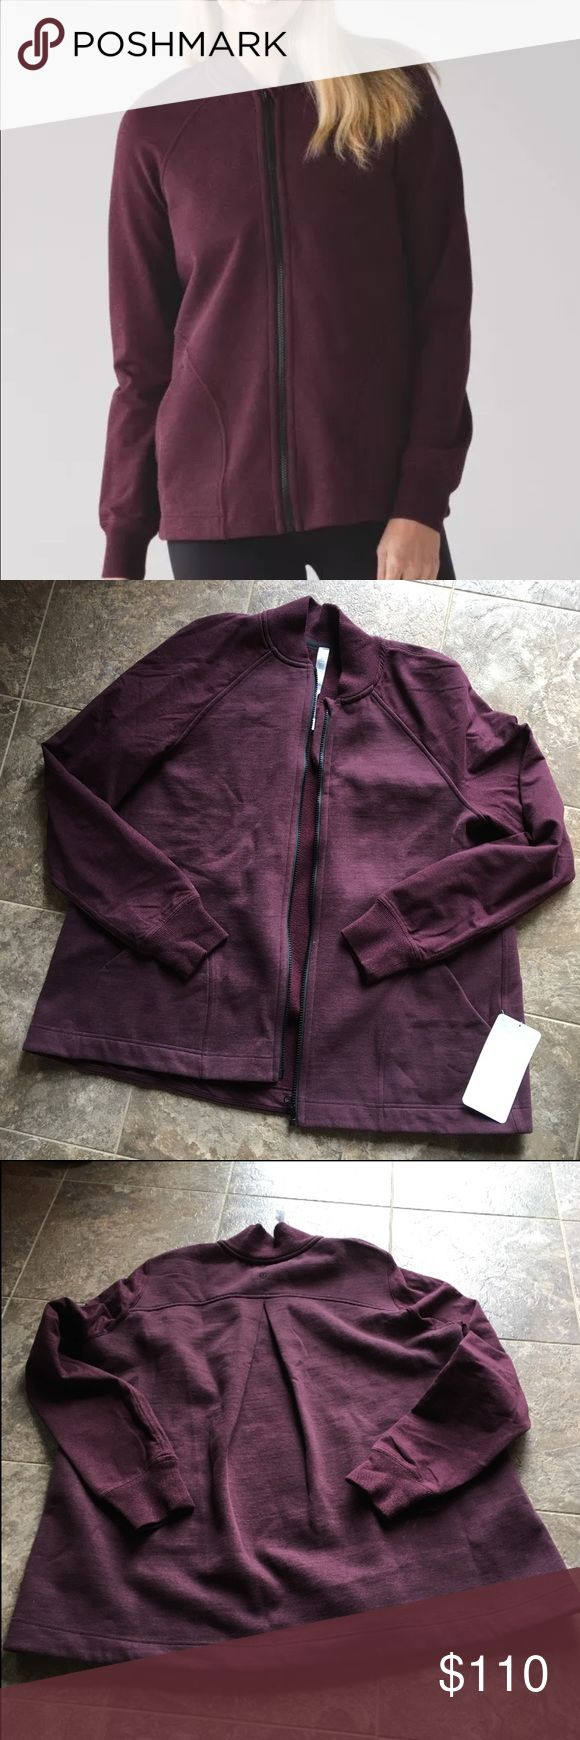 Lululemon PLEAT TO STREET BOMBER size 10 BORDEAUX New with tags. HEAHERED BORDEAUX color. No trades. PRICE FIRM lululemon athletica Jackets & Coats